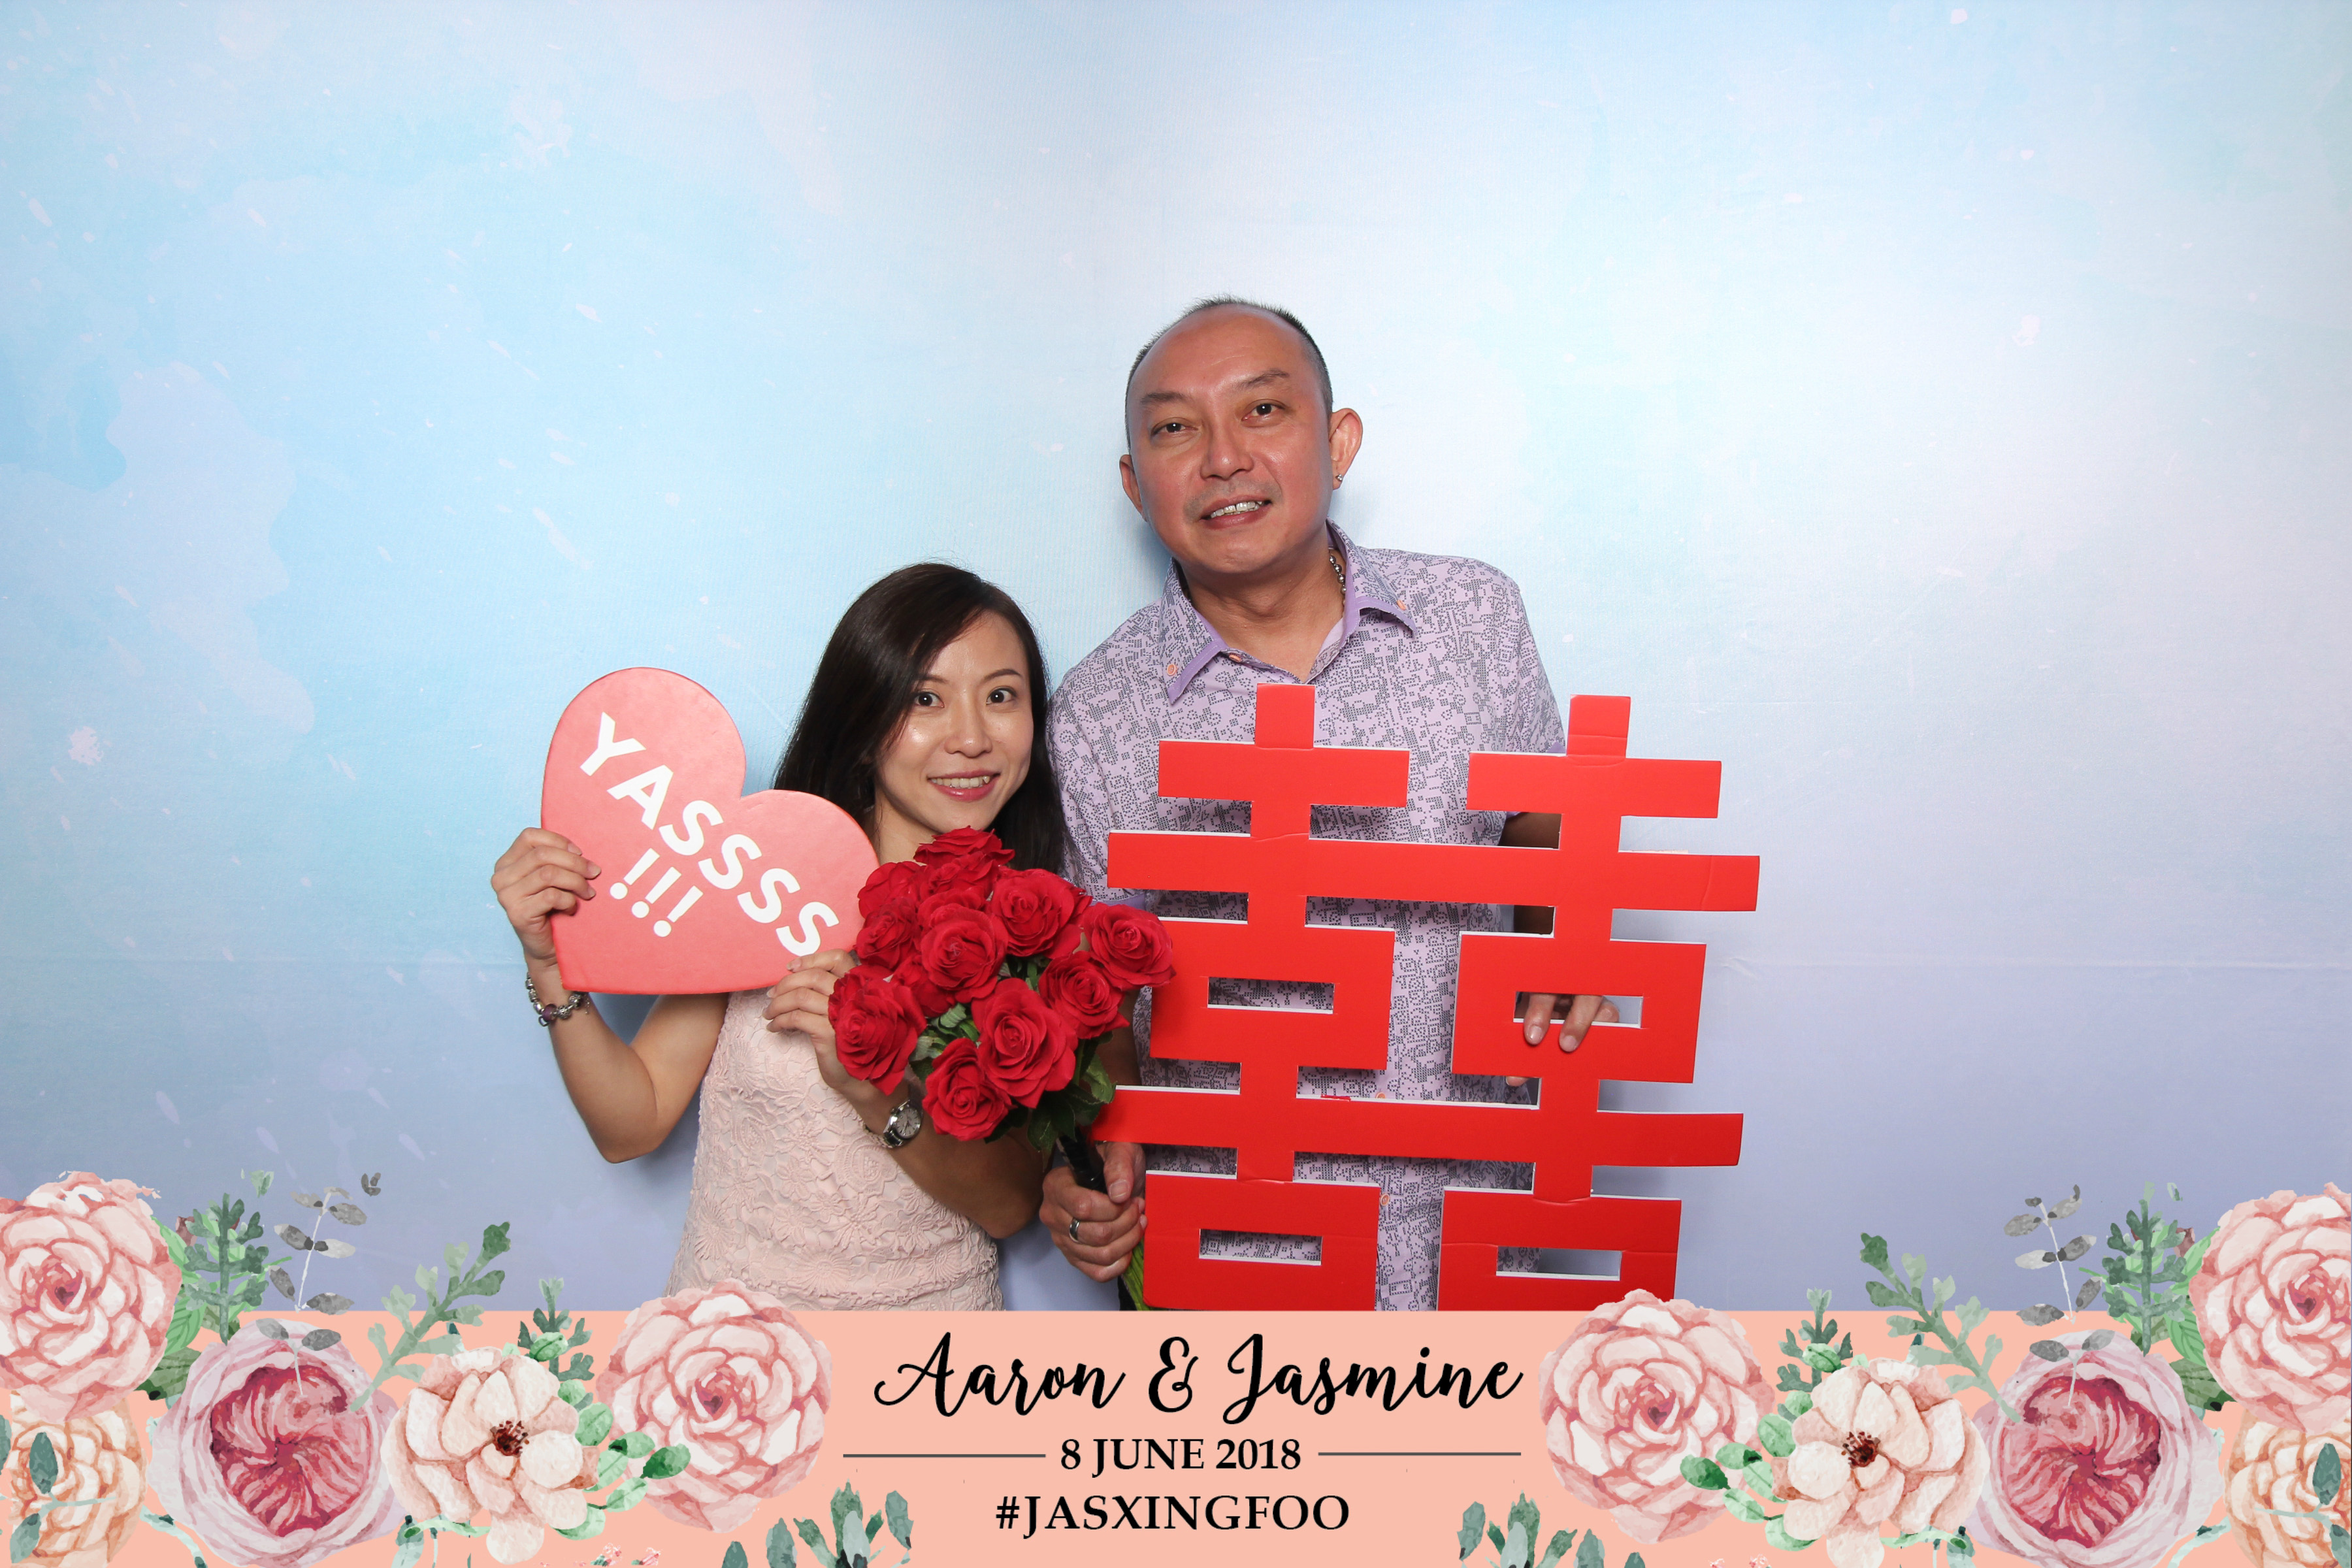 Photobooth 0806-8